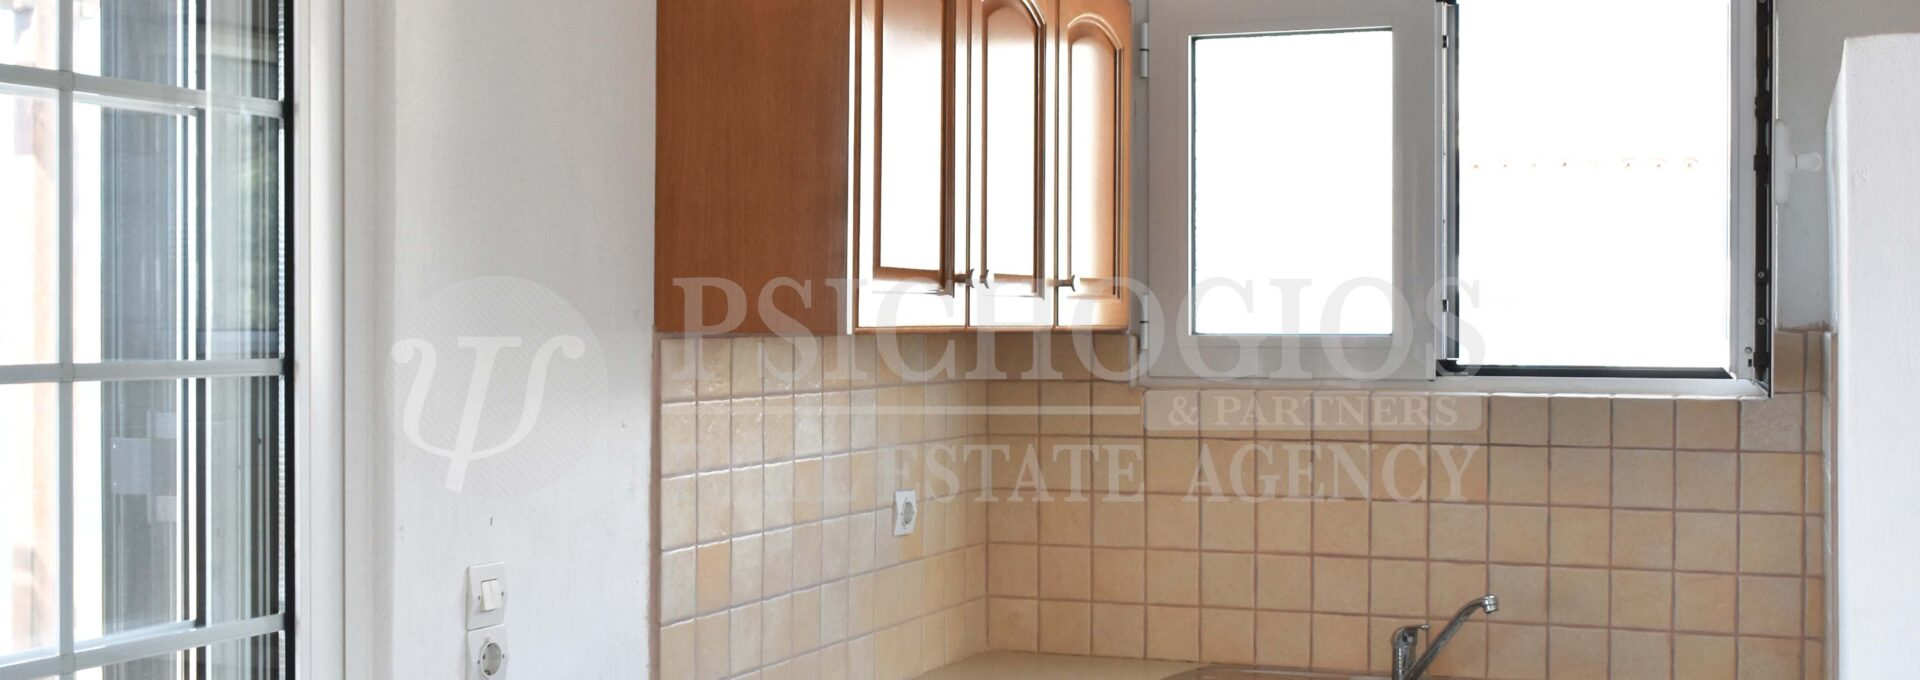 for_sale_house_223_square_meters_plot_730_square_meters_view_to_the_sea_ermioni_greece (25)